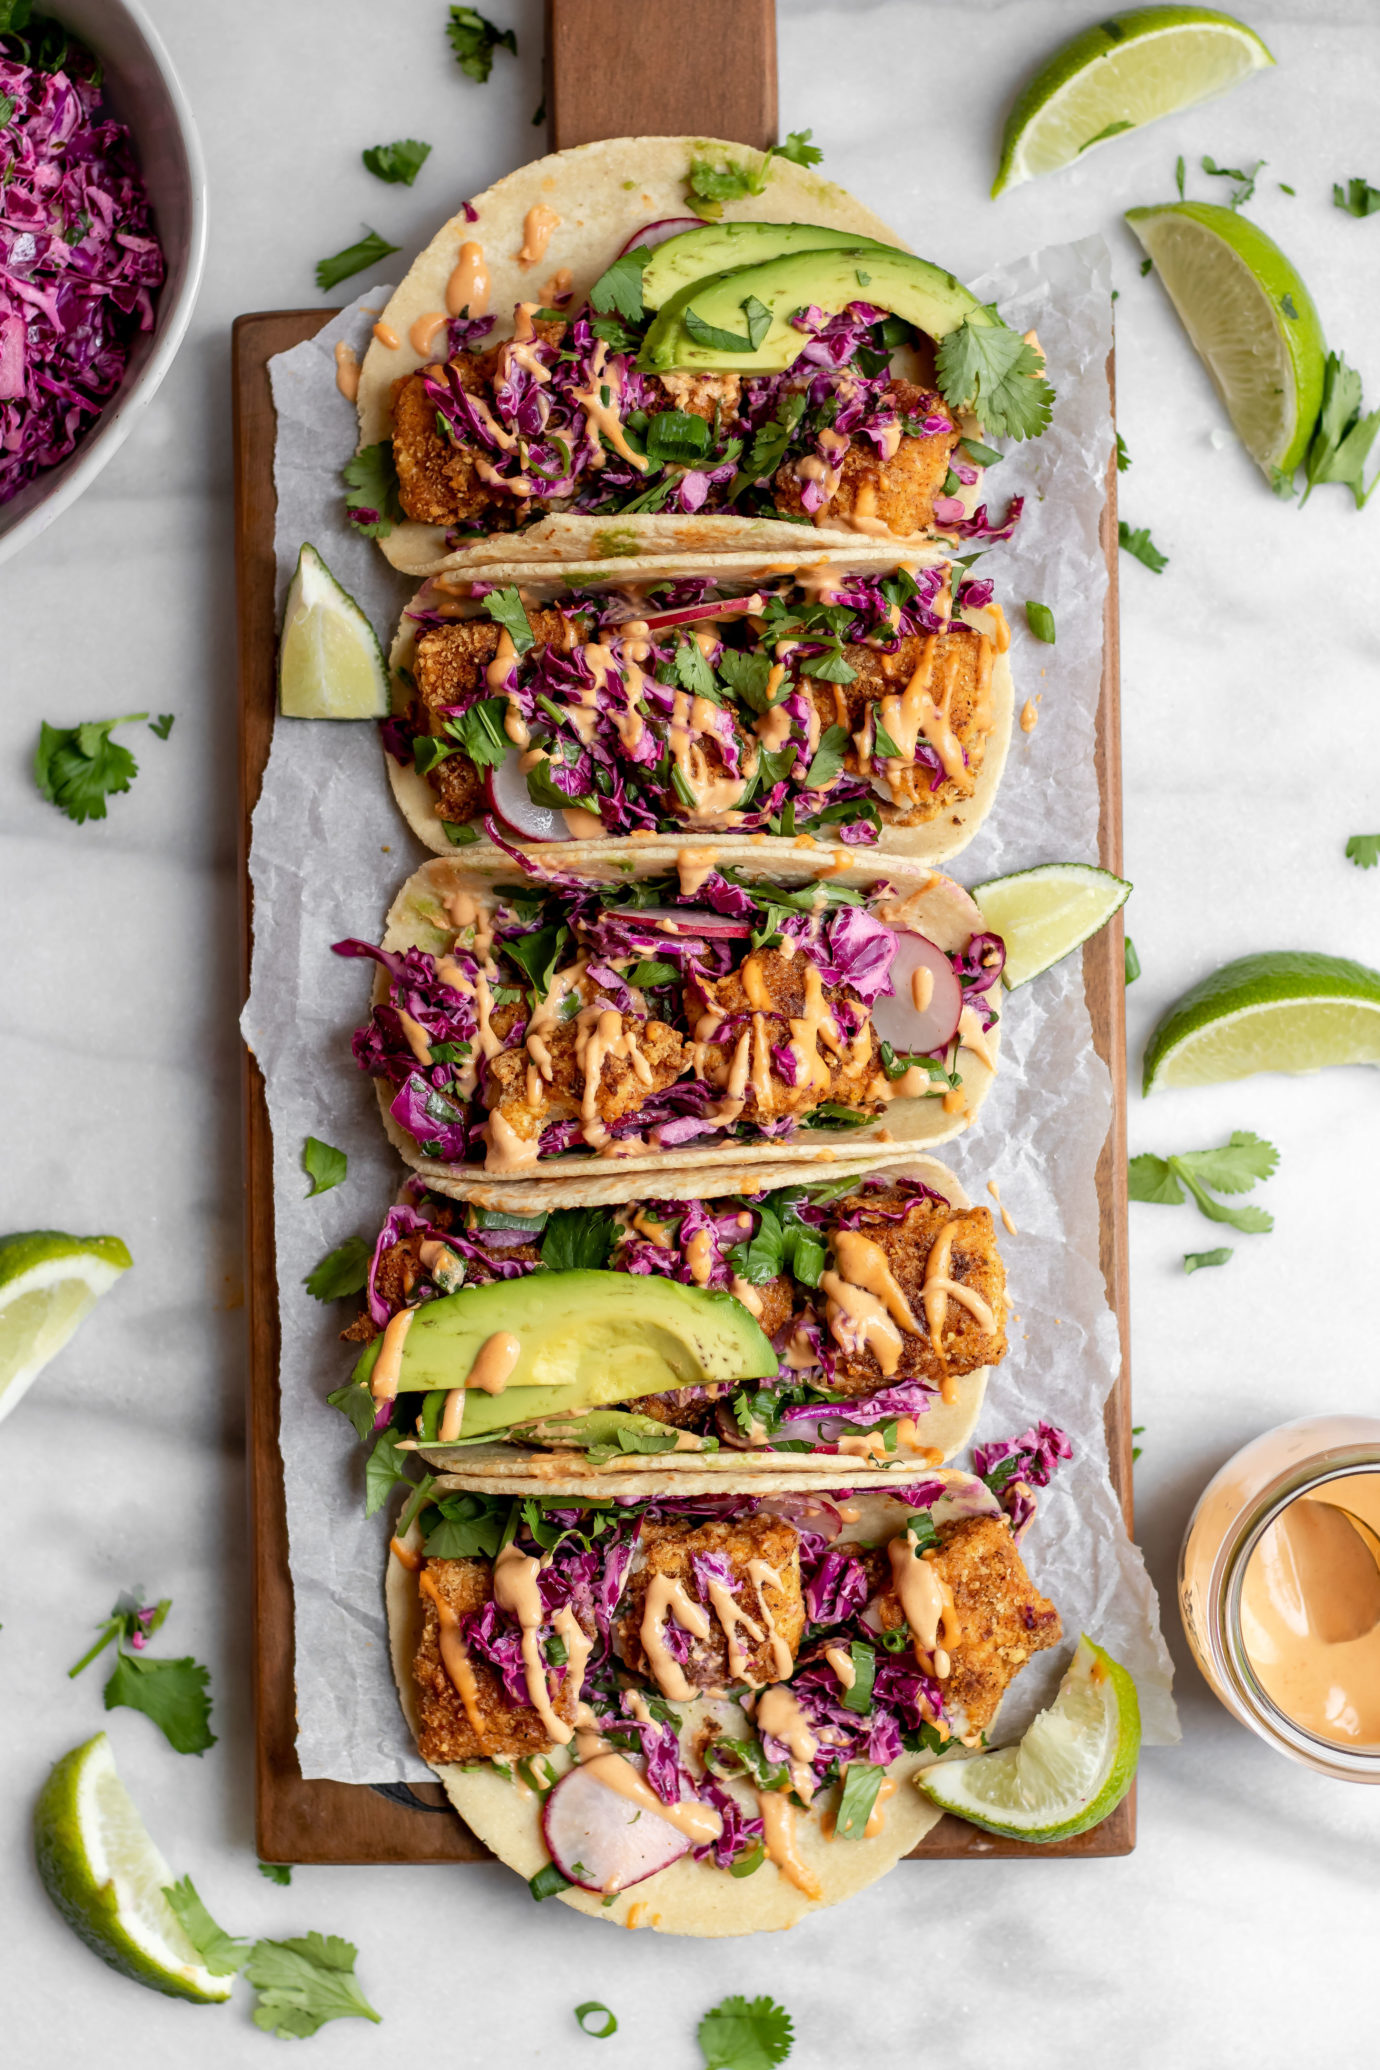 Baked fish tacos with cilantro lime cabbage slaw